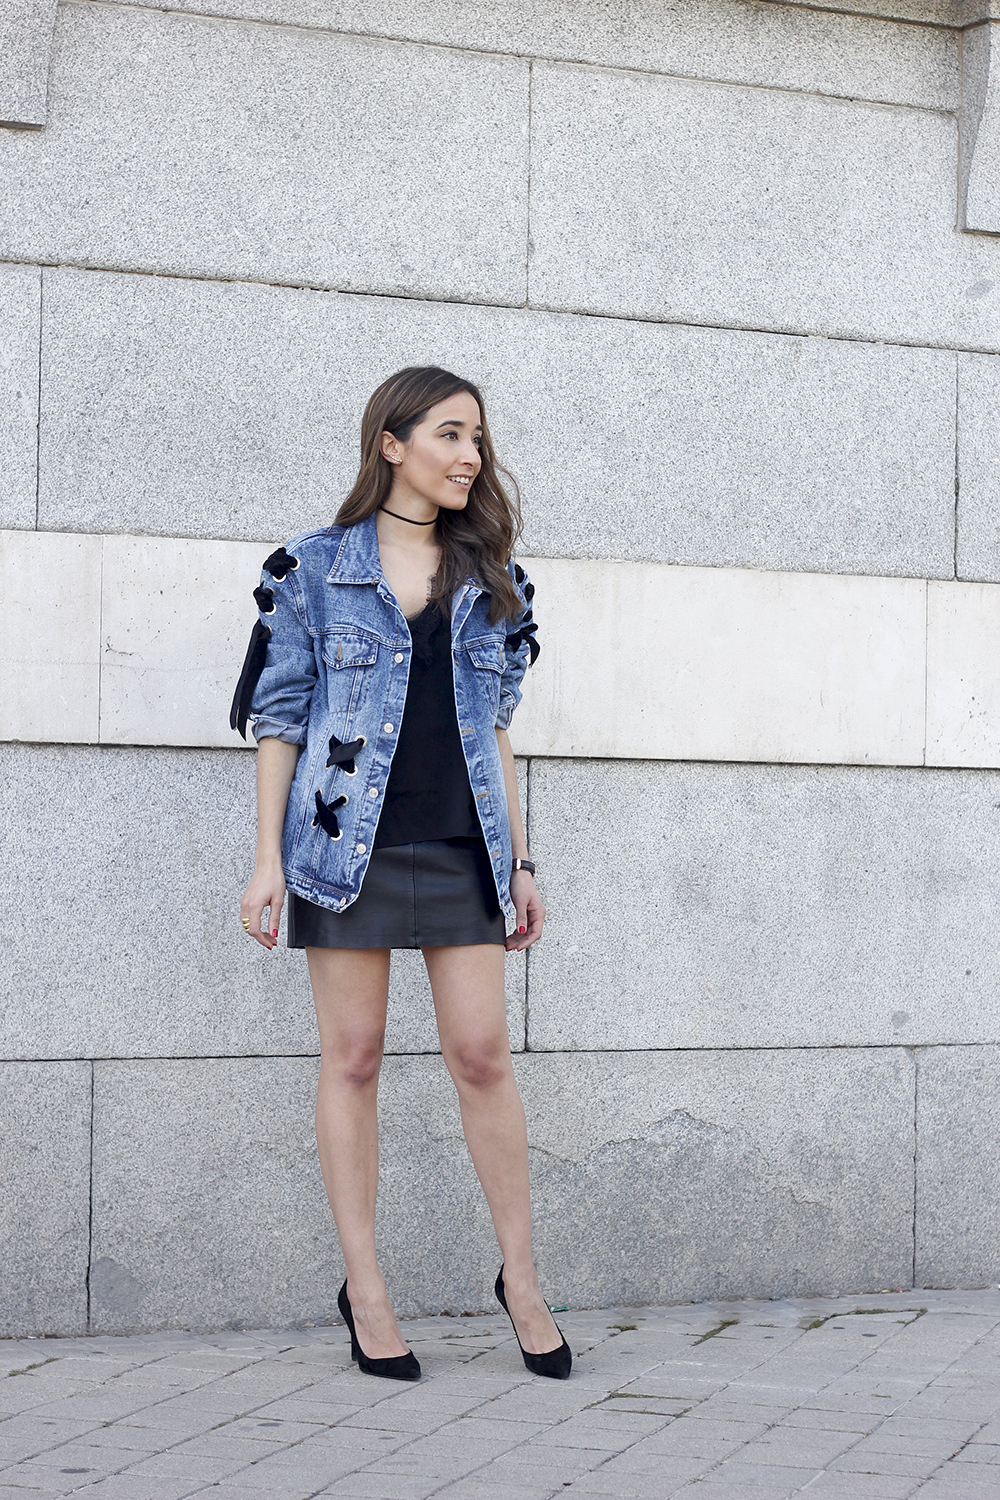 denim jacket leather skirt black heels outfit style fashion summer08